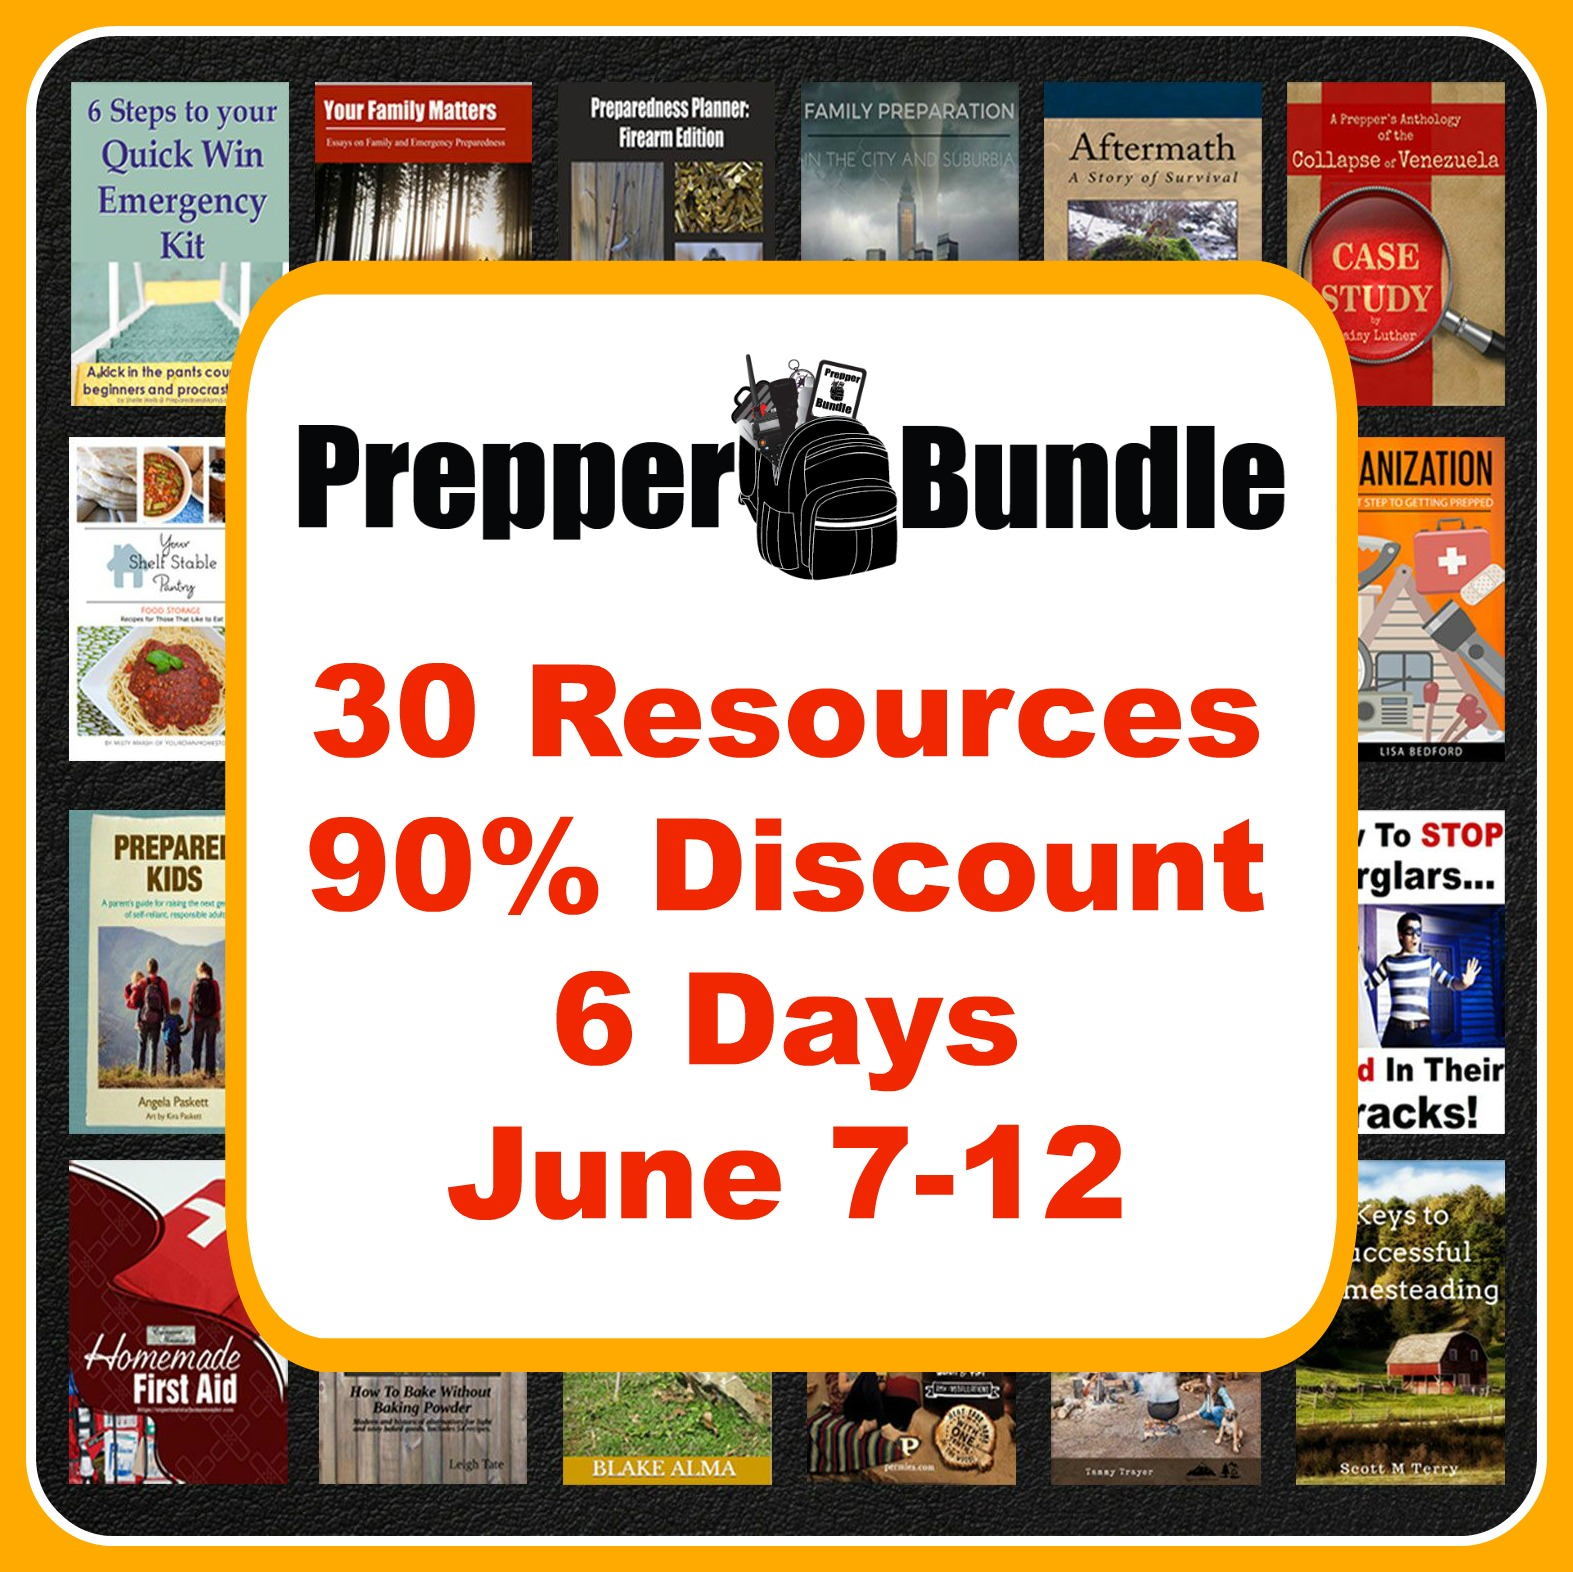 Get the Prepper Bundle this week only!